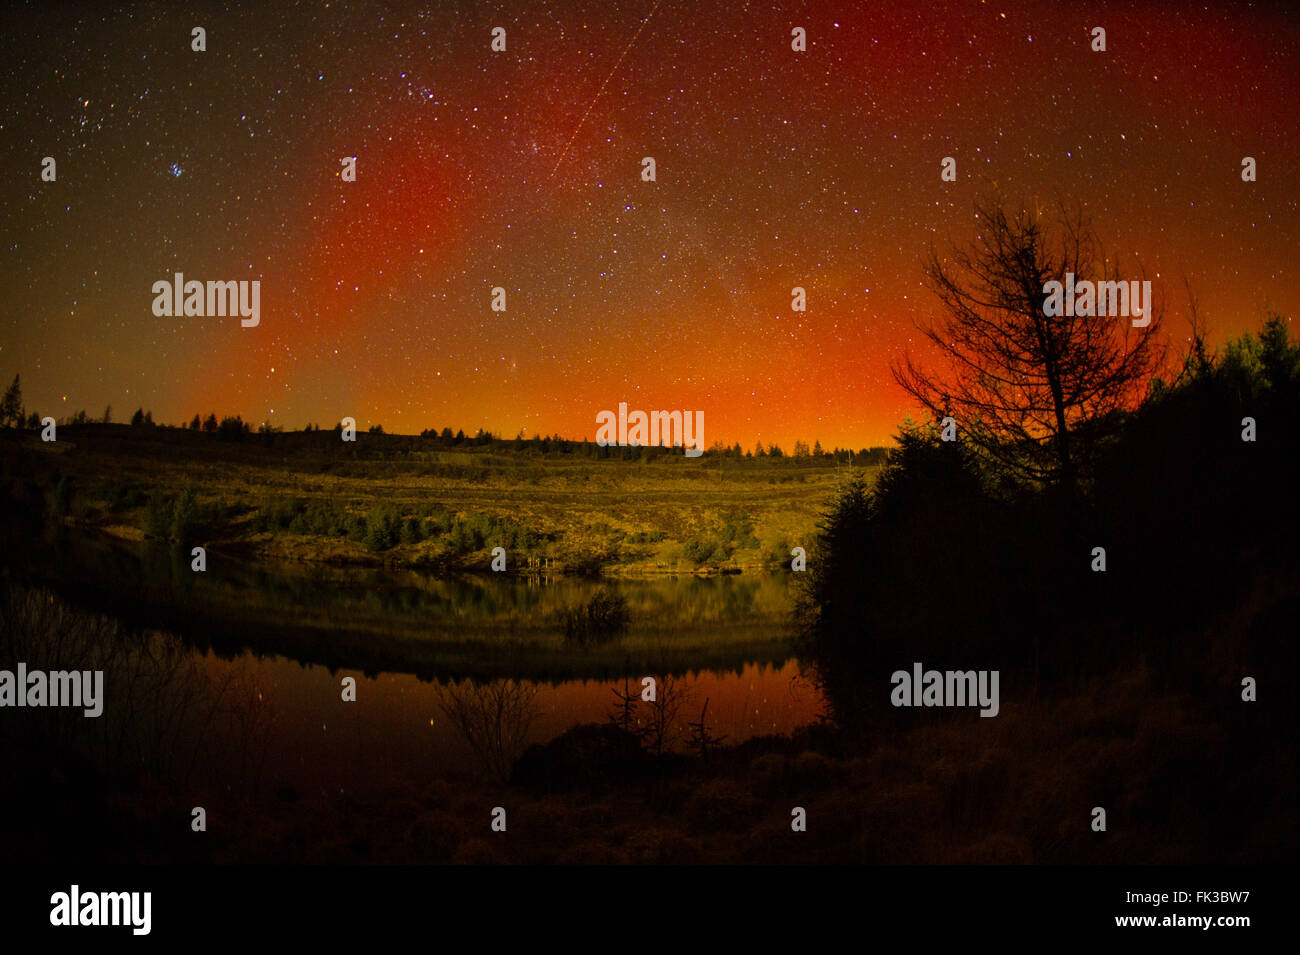 Nant yr Arian, Ceredigion, Wales UK, Sunday 06 March 2016 The spectacular sight of the Aurora Borealis - Northern - Stock Image